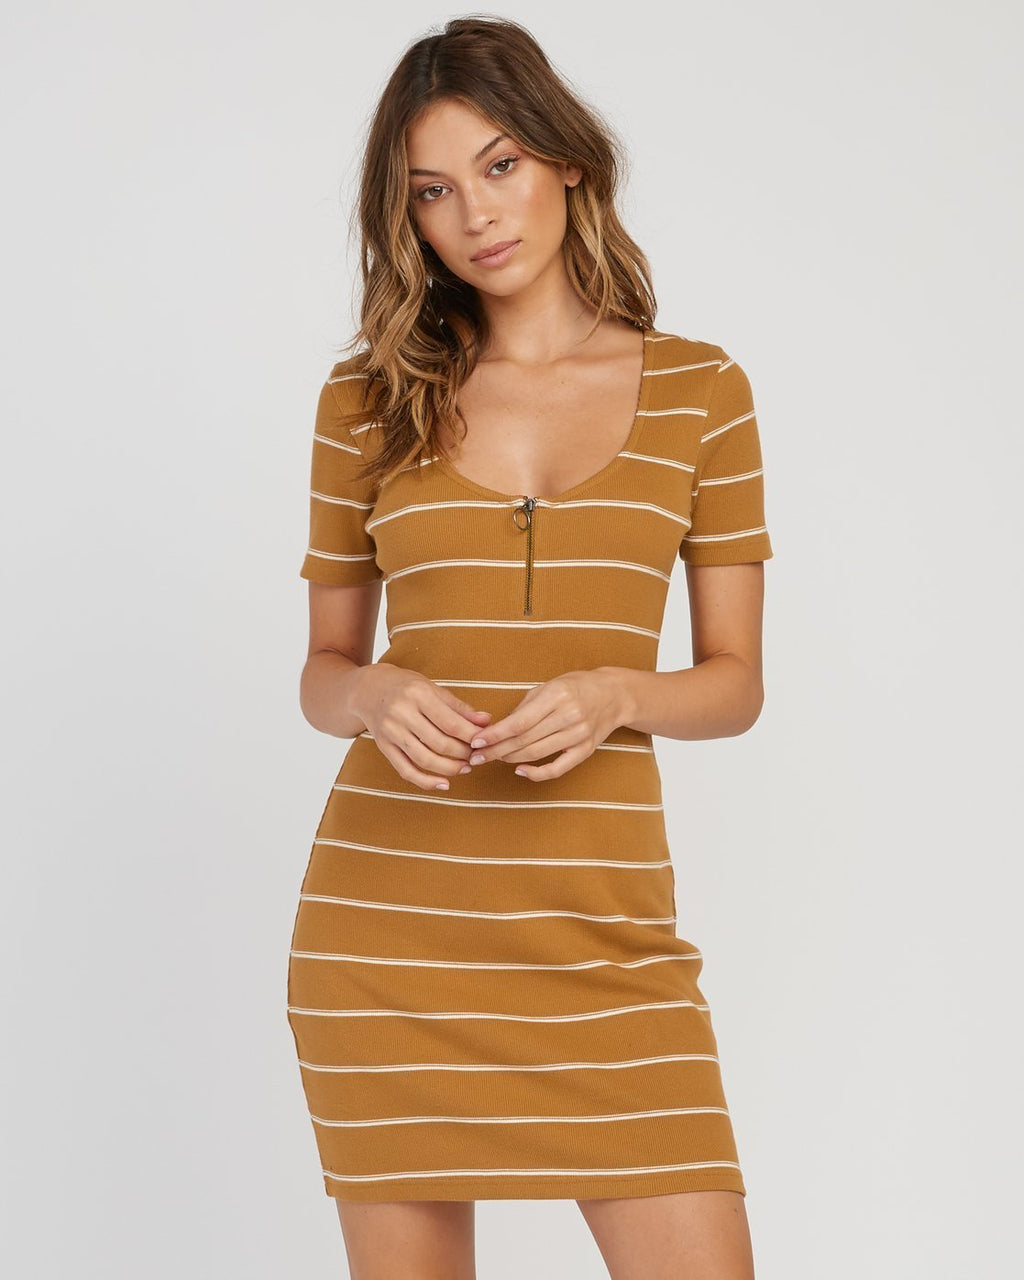 '-RVCA- Women's Apparel - Dresses X-Small / Beeswax Z-RVCA - Donner Striped Knit Dress